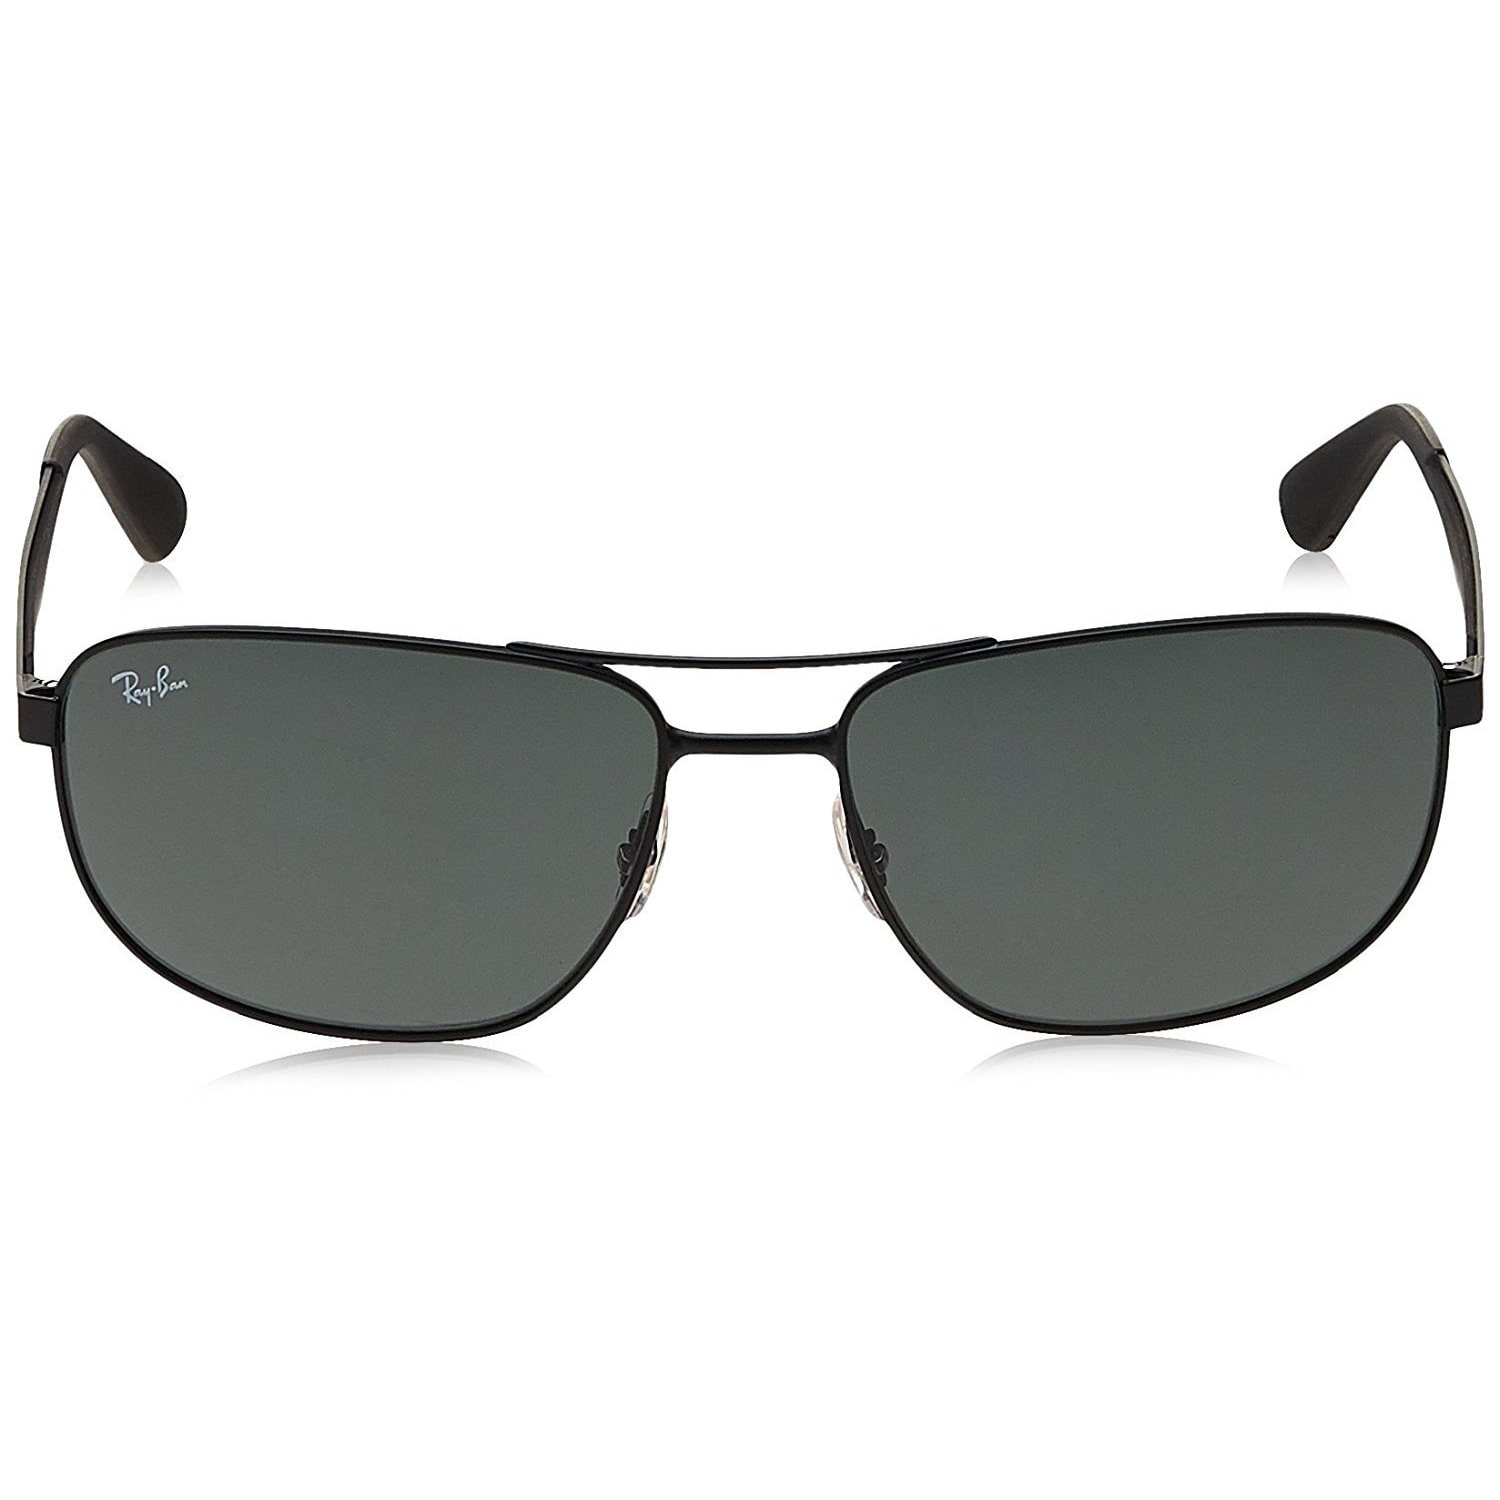 e7f6b81442a78 Shop Ray-Ban RB3528 006 71 Black Frame Green Classic 61mm Lens Sunglasses -  Free Shipping Today - Overstock - 14431344